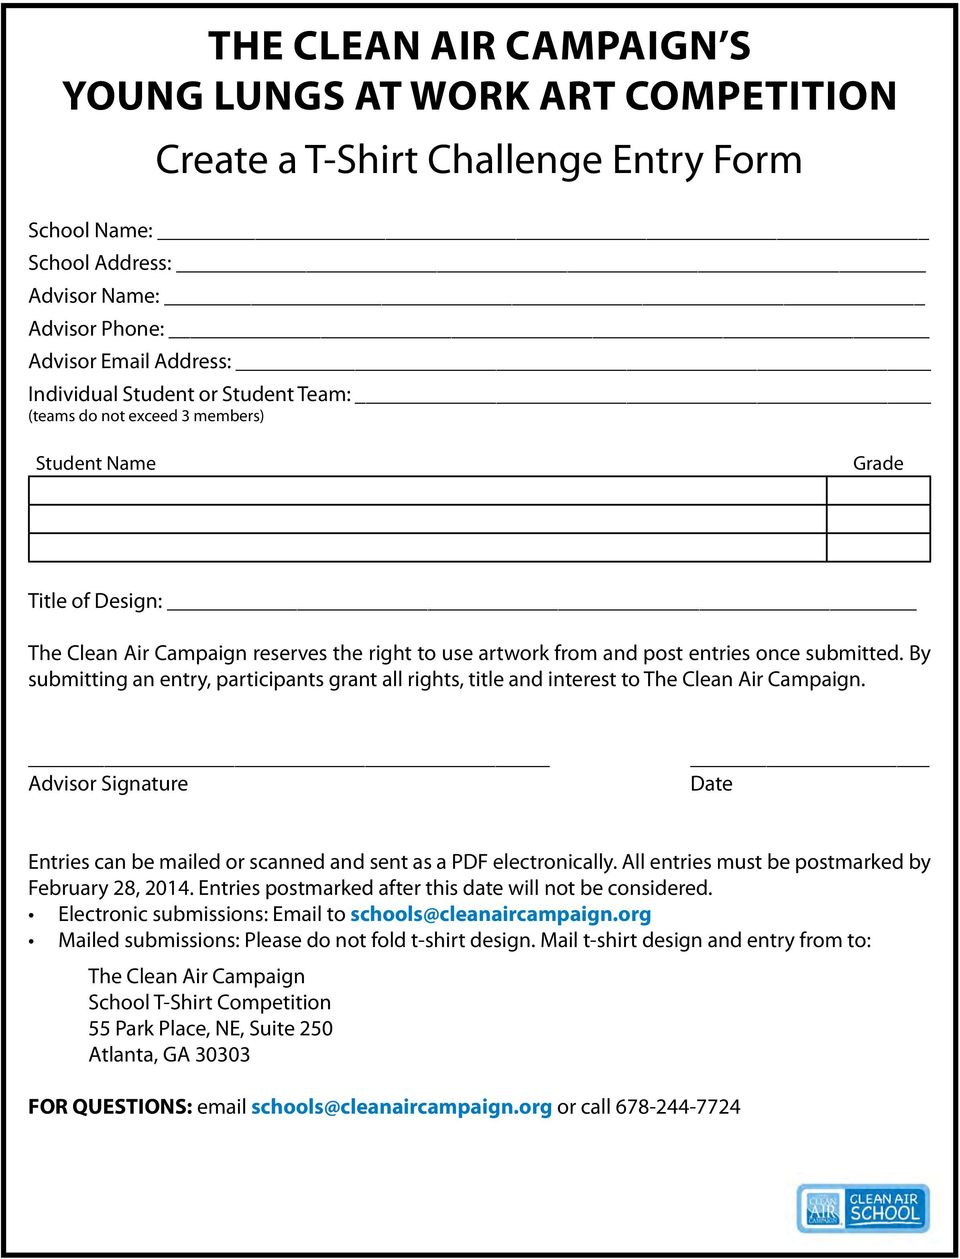 By submitting an entry, participants grant all rights, title and interest to The Clean Air Campaign. Advisor Signature Date Entries can be mailed or scanned and sent as a PDF electronically.